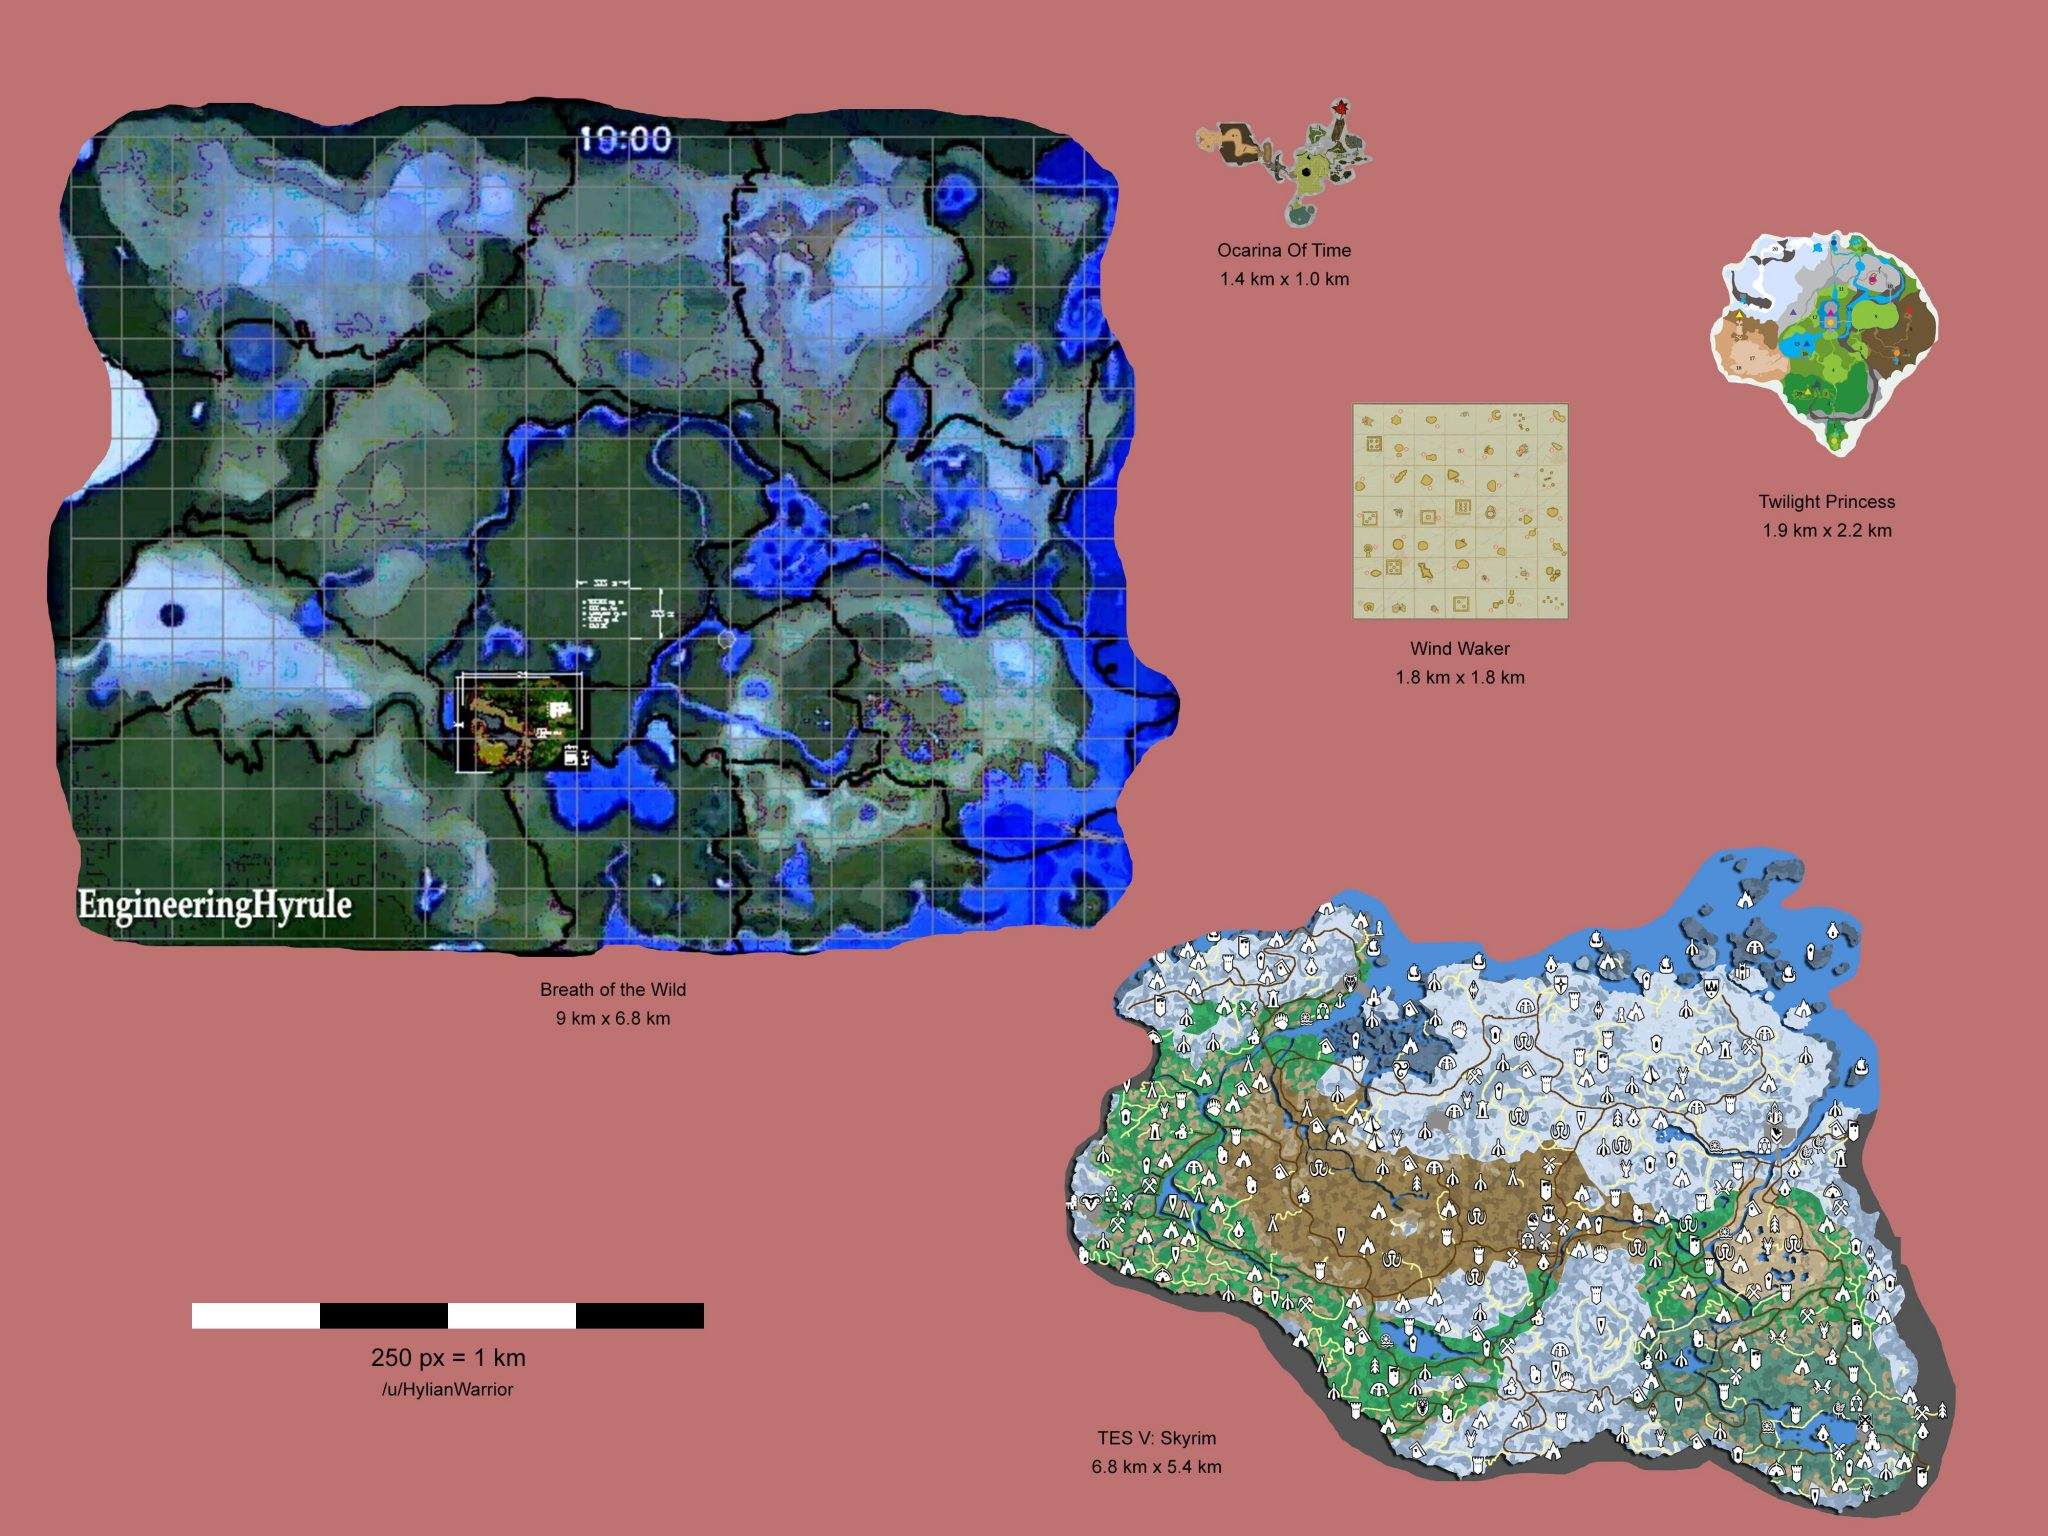 The Legend of Zelda Breath of the Wild World Map Revealed